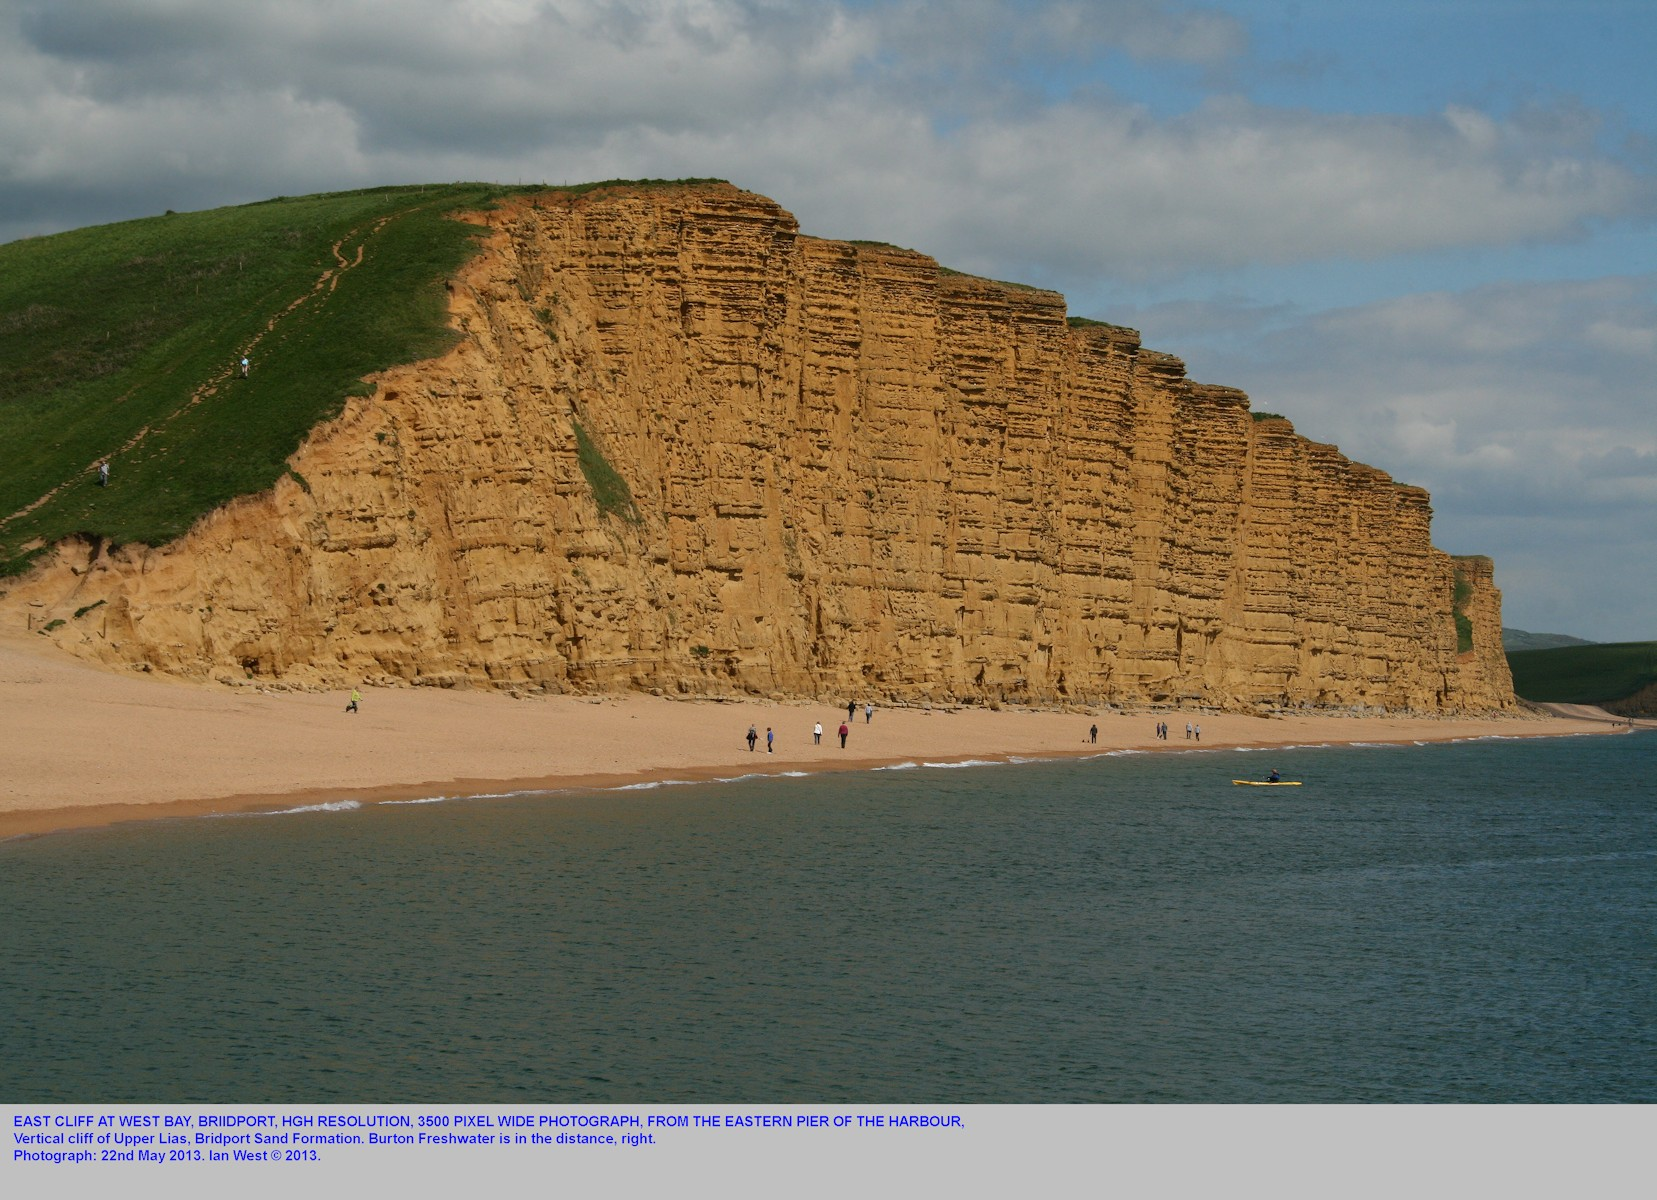 East Cliff, West Bay, Bridport, Dorset, seen from the eastern pier of the harbour, high resolution photograph, May 2013